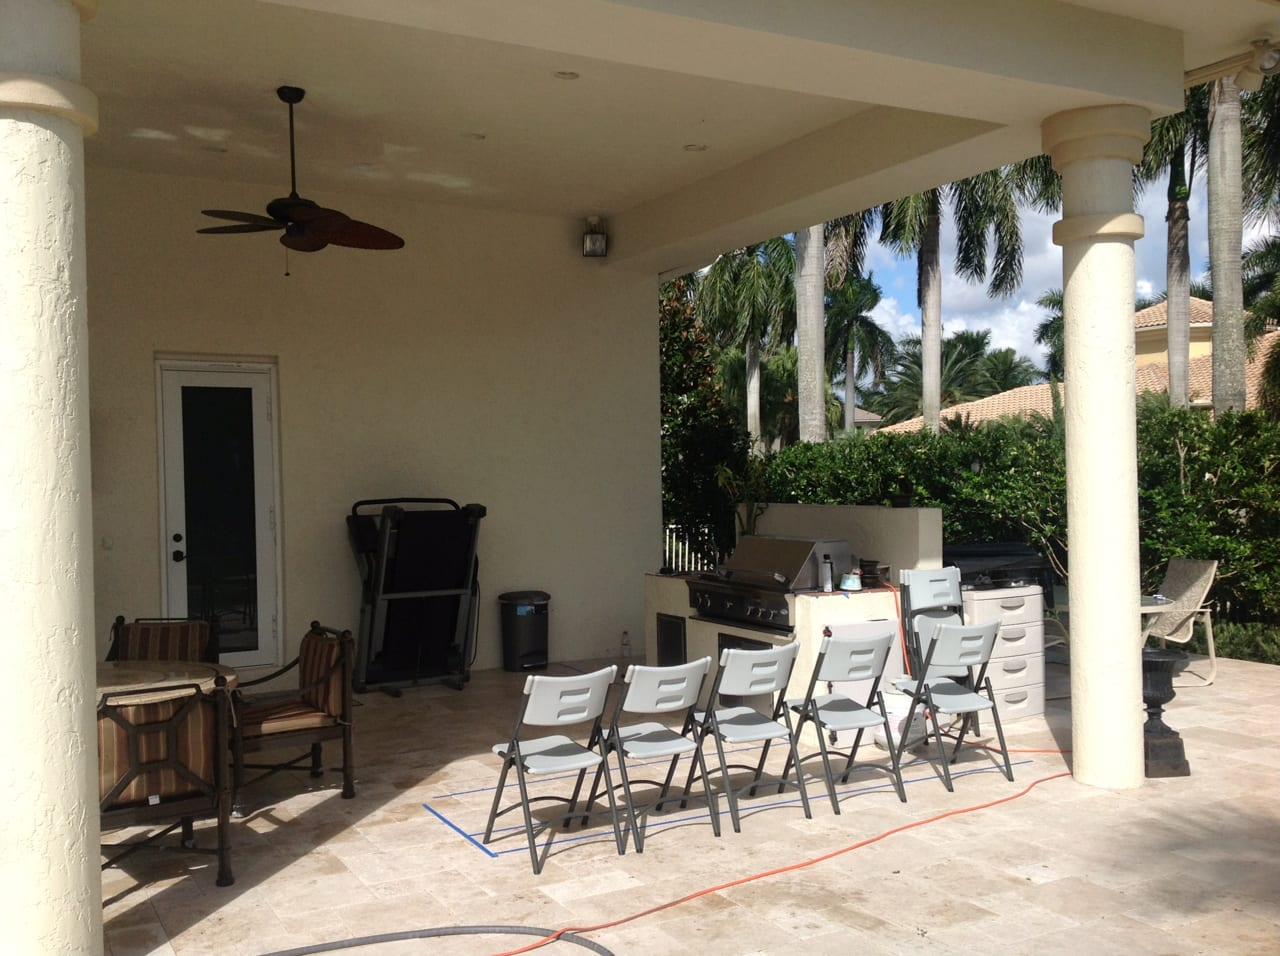 Weather Is A Significant Factor When Considering Outdoor Remodeling, Such  As The Patio. Fortunately, Here In South Florida, We Can Work Outside For  Much Of ...